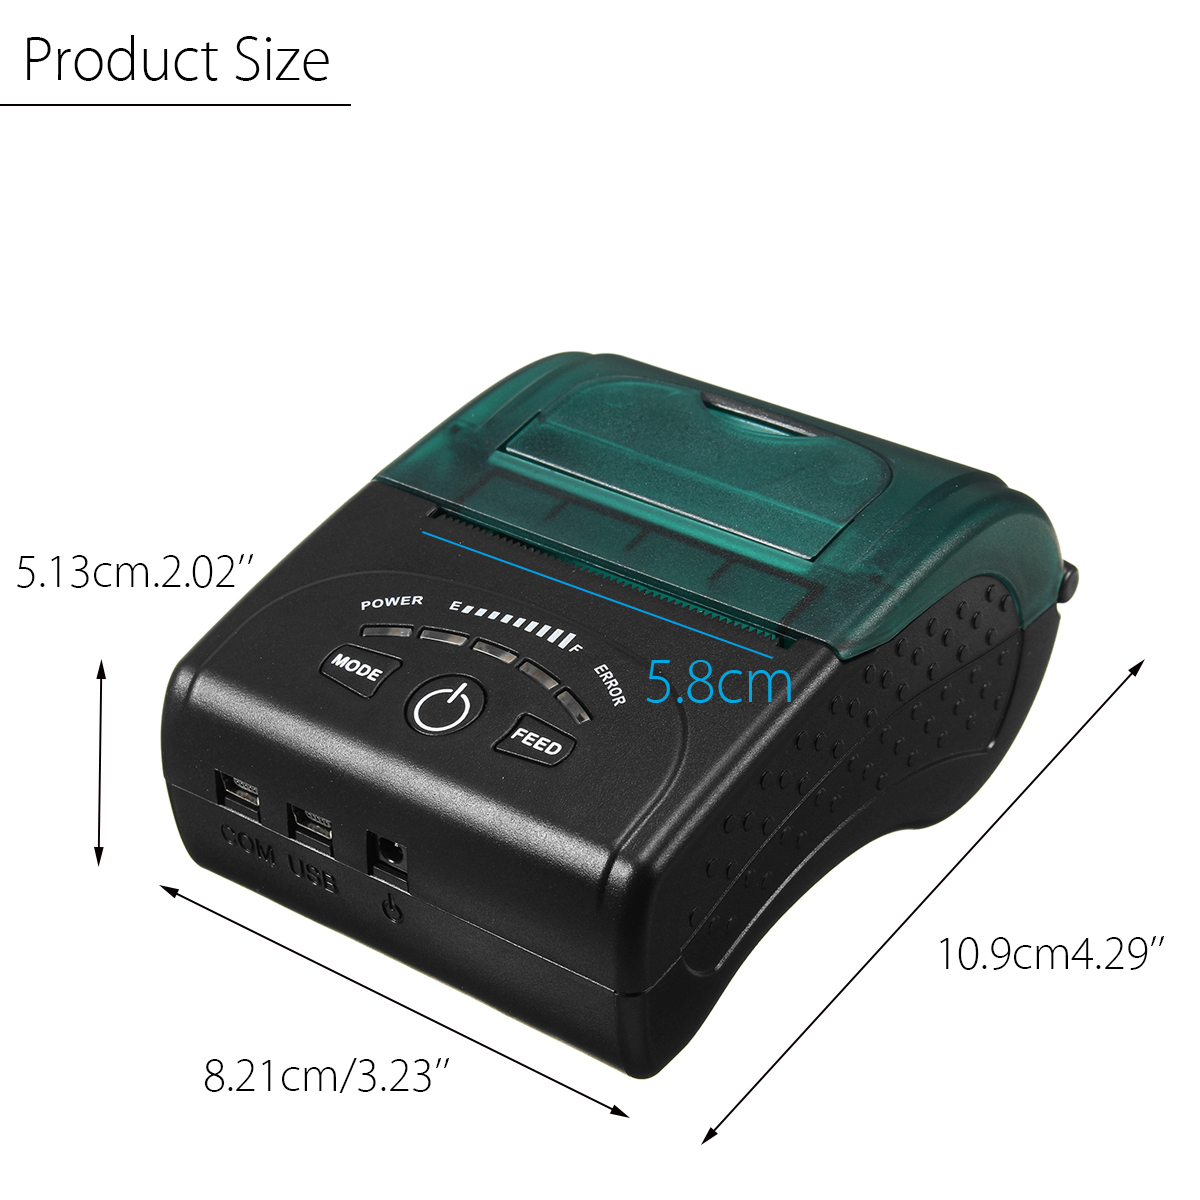 58mm Wireless Portable bluetooth Thermal Printer Receipt for Android/IOS/Windows